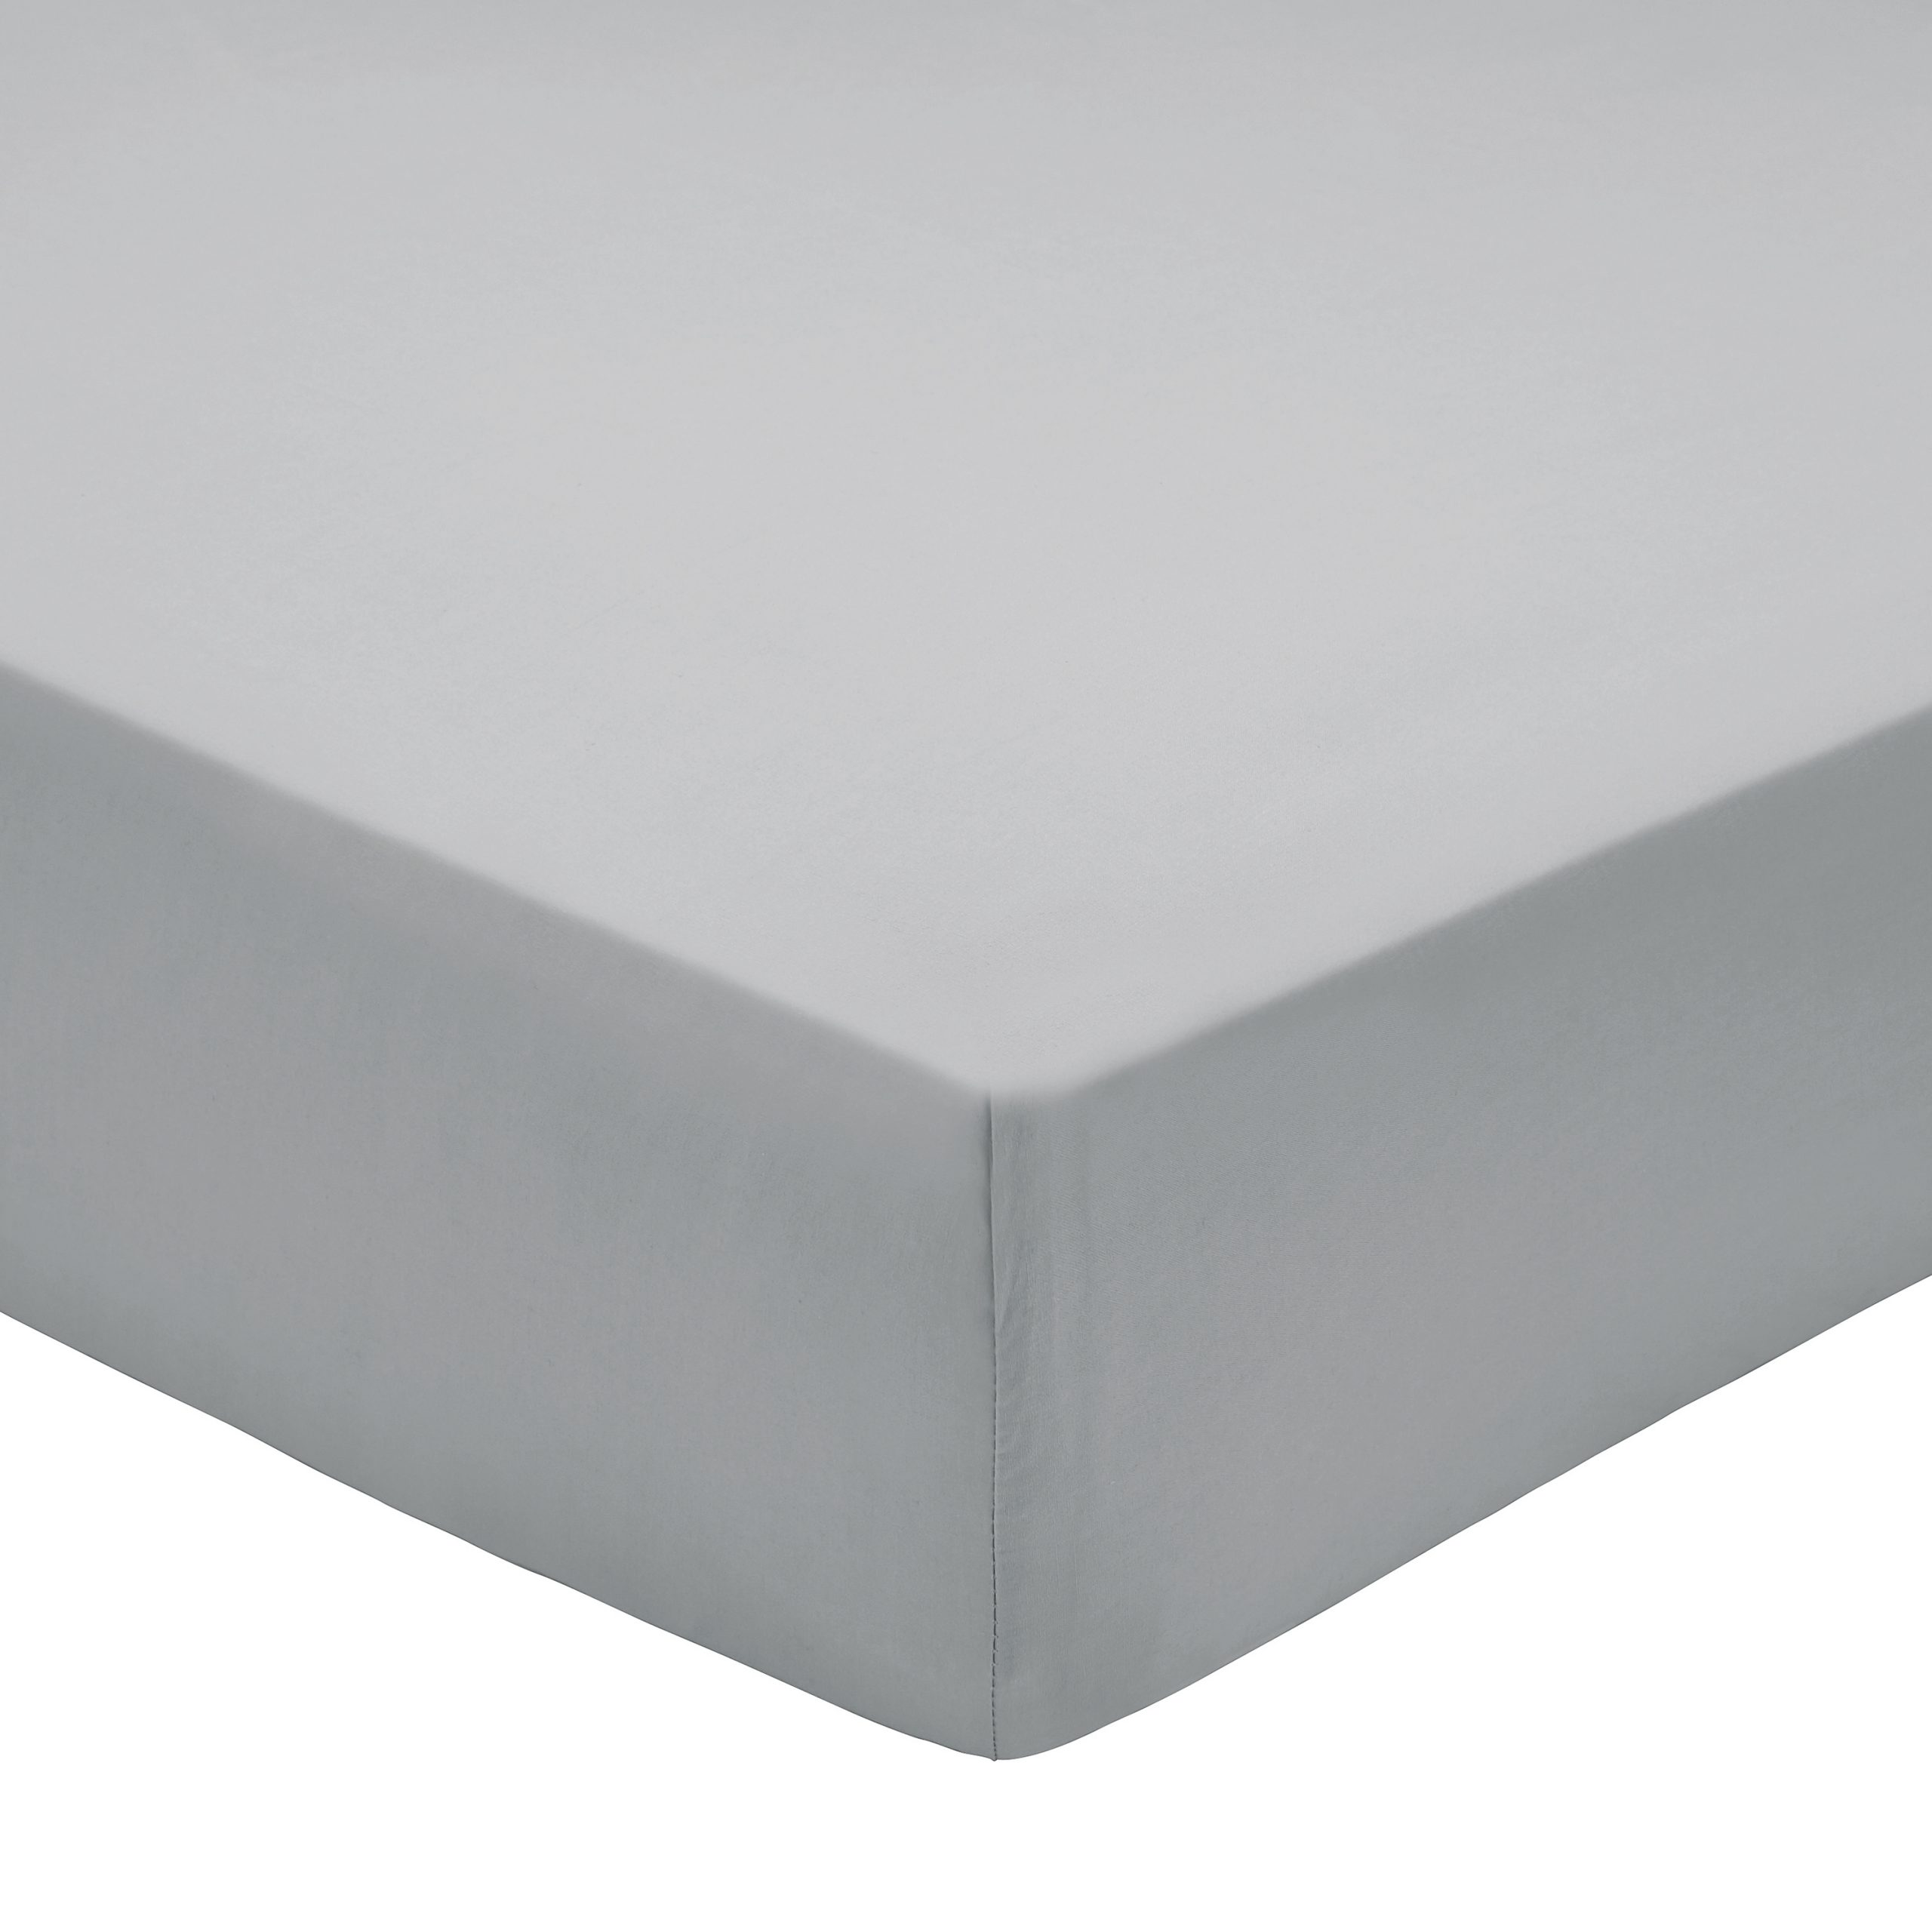 200TC PIMA COTTON FITTED SHEET KING SIZE GREY